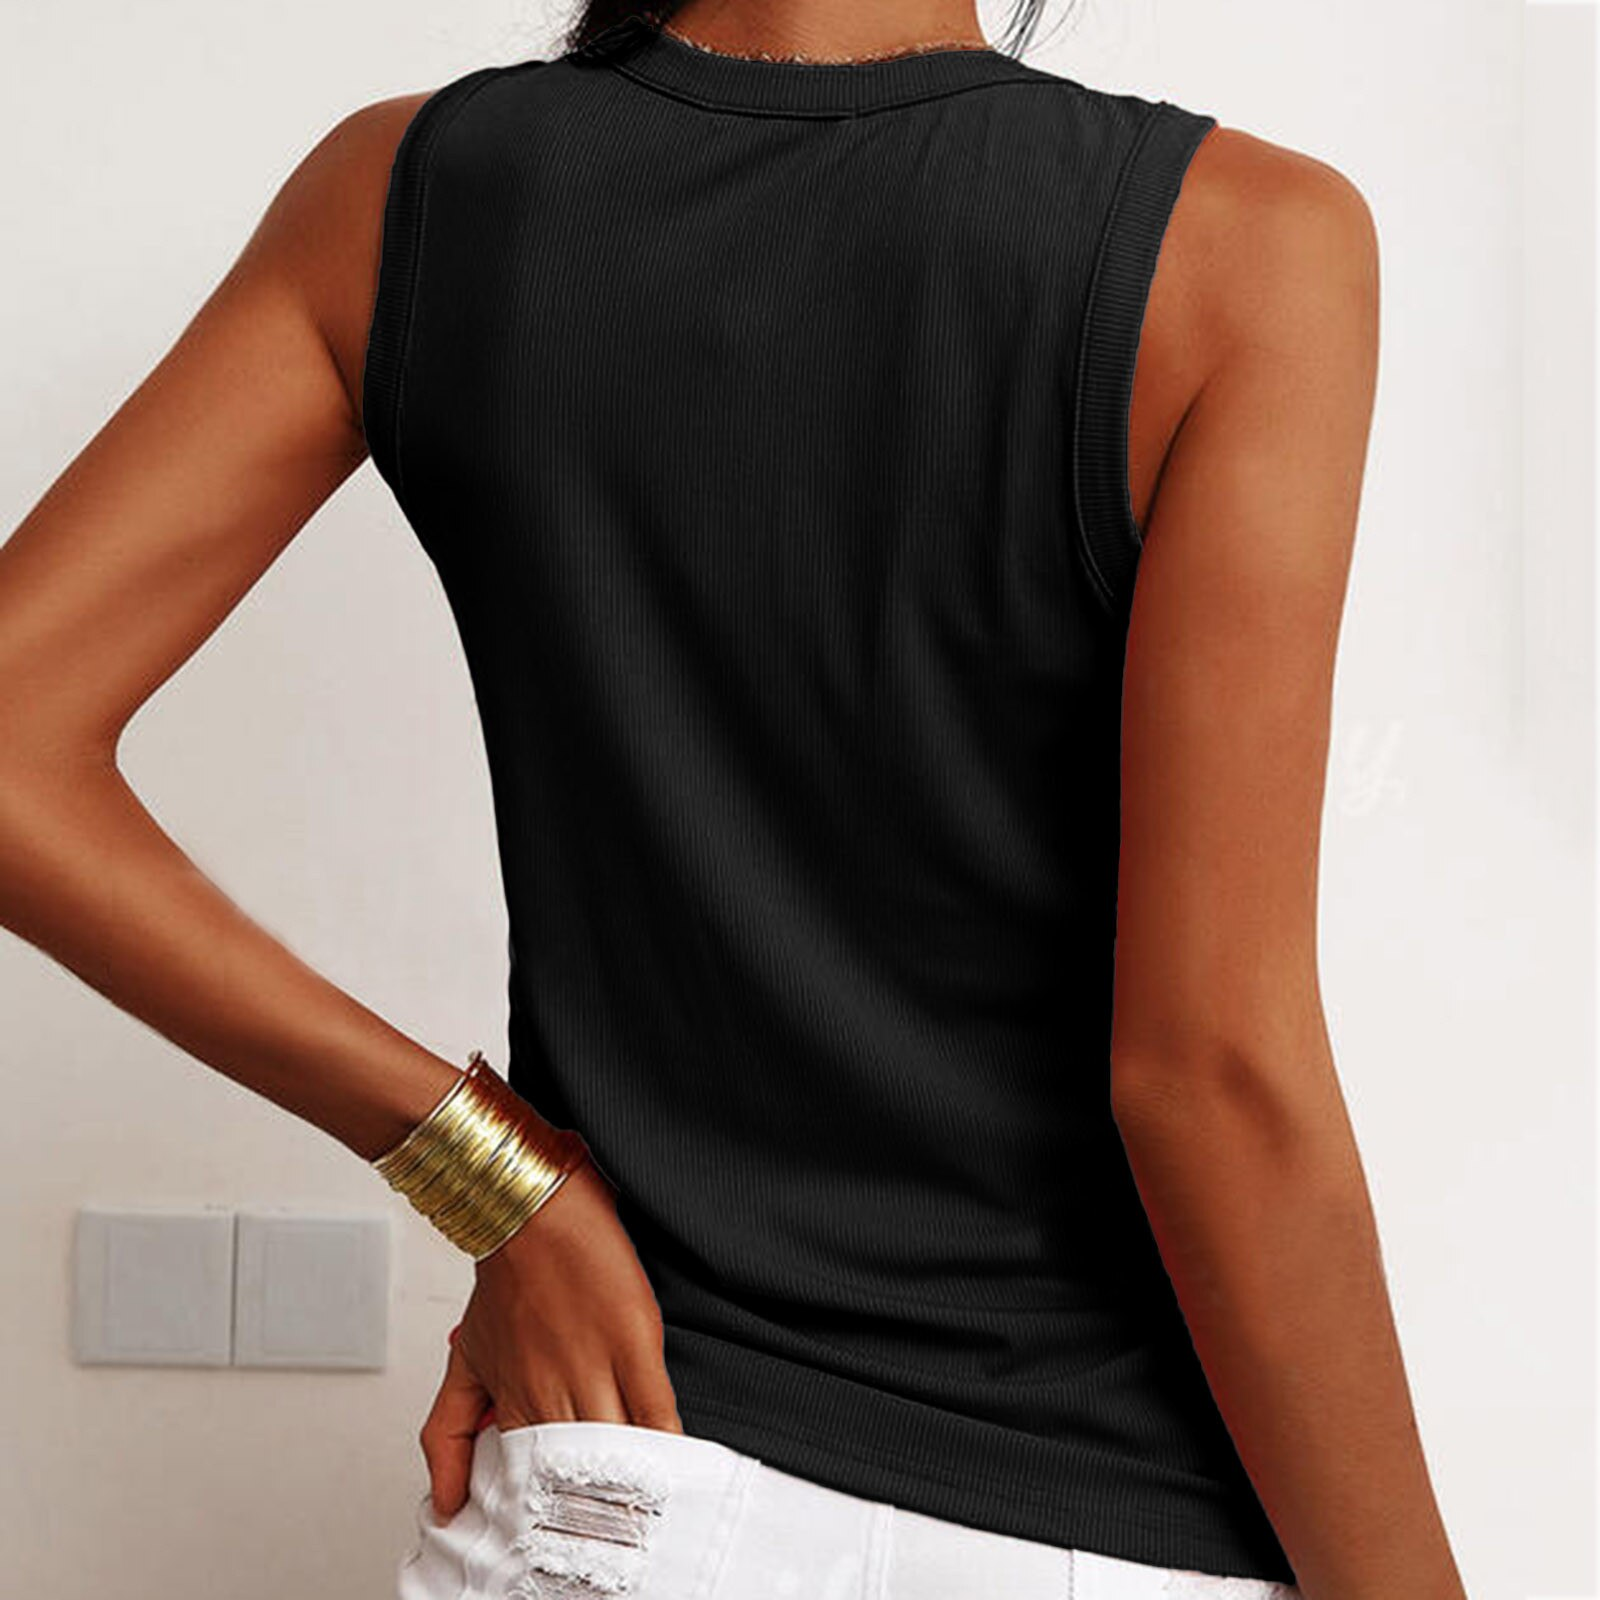 Women's 2021 Summer T-shirt VEST Fashion button V-neck Casual All-match T-shirt Tight-fitting Top Women clothing топ женский